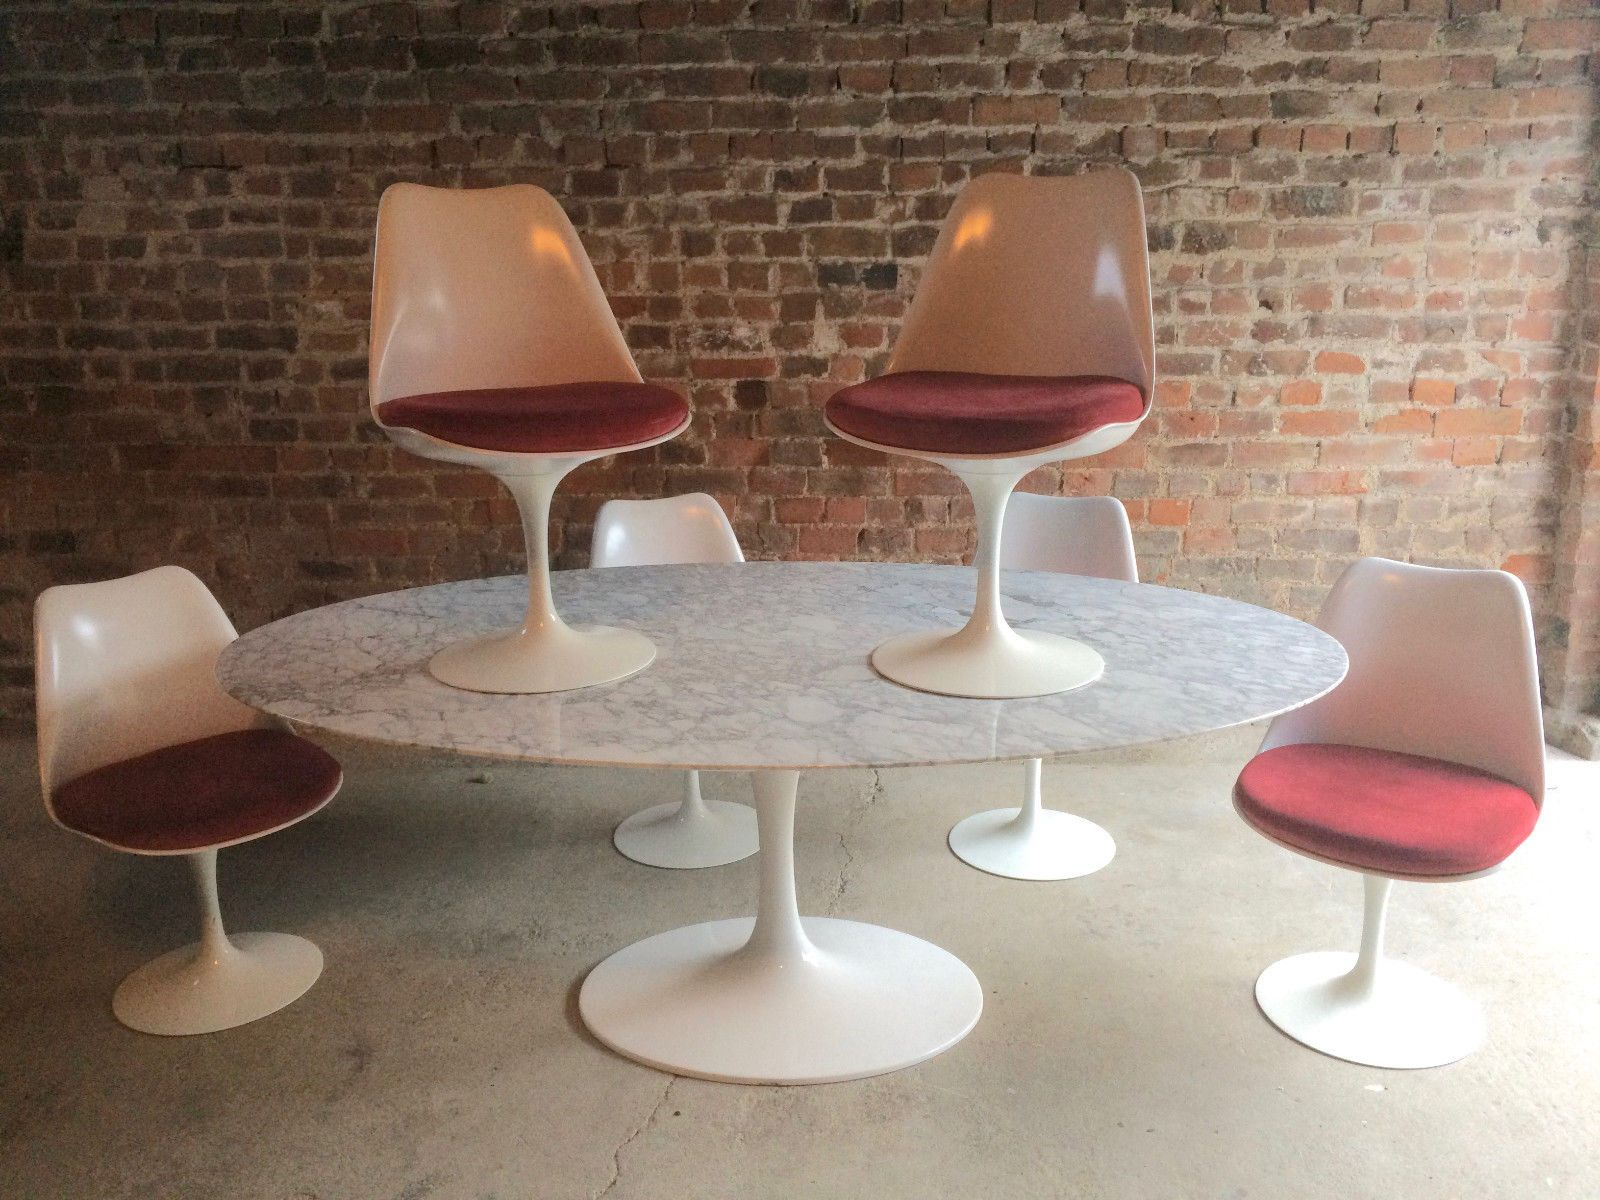 Vintage Marble Tulip Dining Set by Eero Saarinen for Knoll for